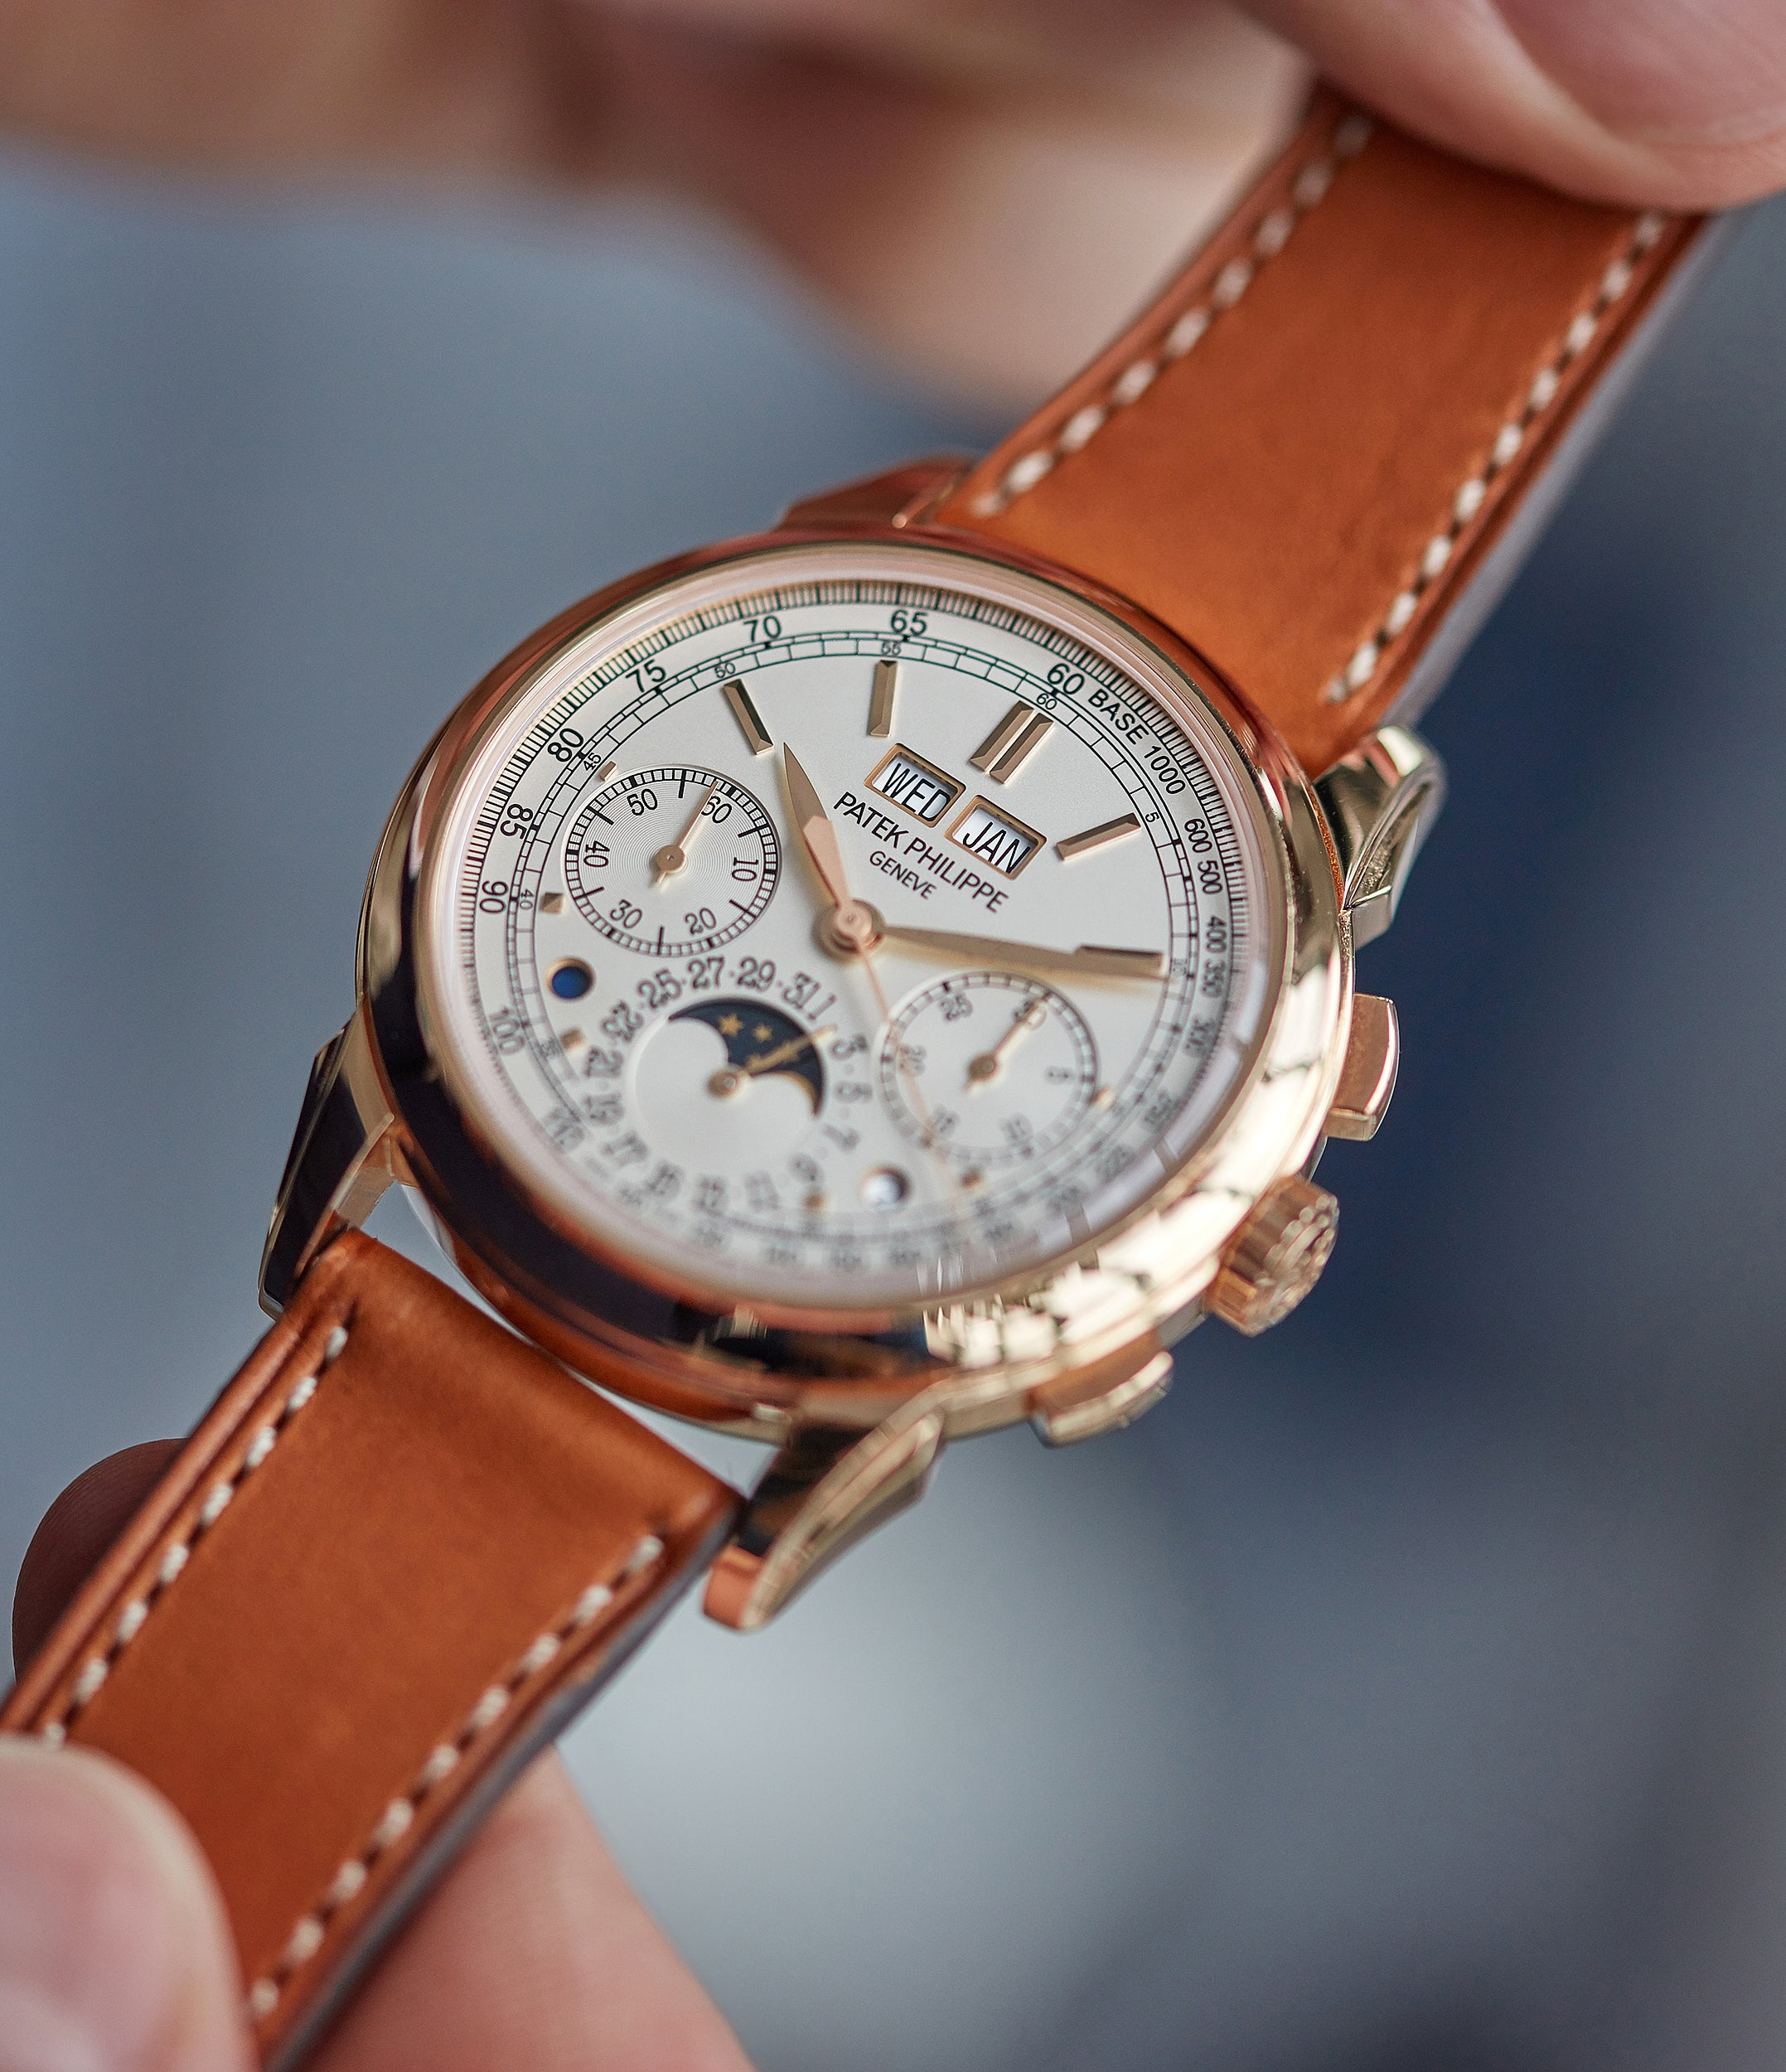 hands on with Patek Philippe 5270R Grand Complications Perpetual Calendar Chronograph rose gold dress watch for sale online at A Collected Man London UK specialist of rare watches